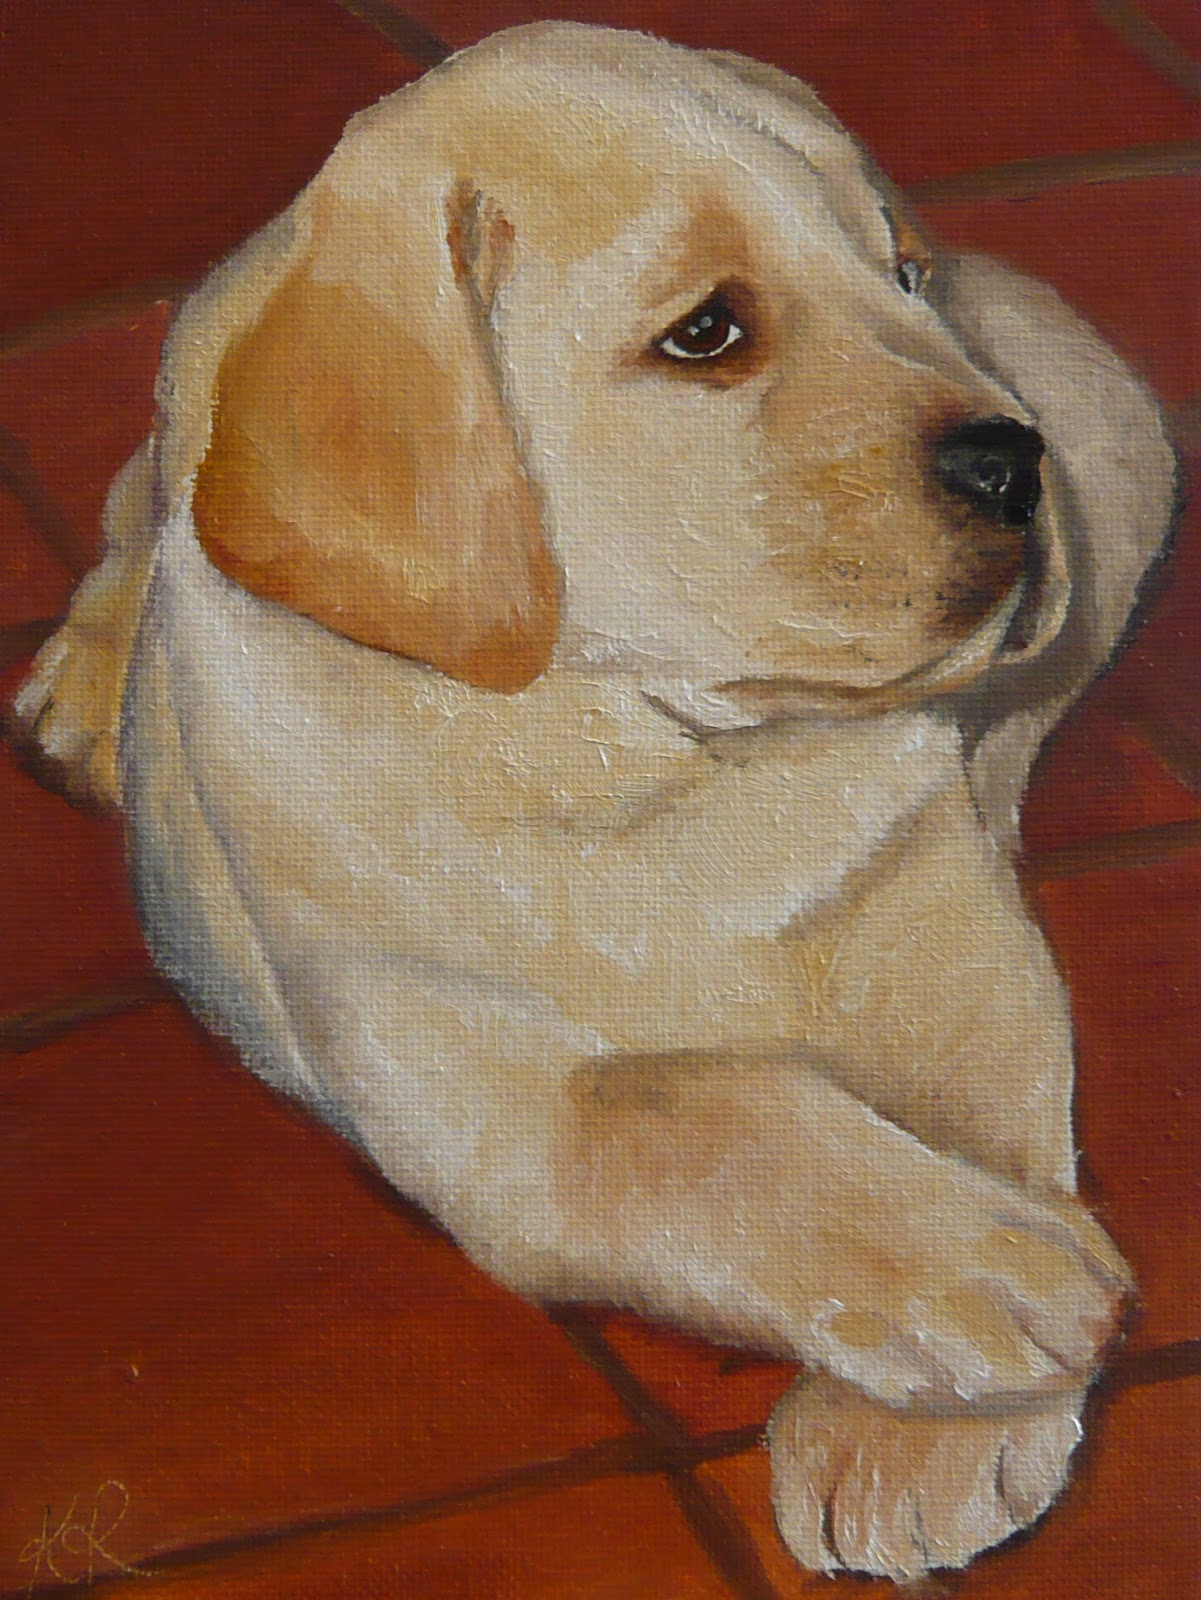 labrador in oil paint